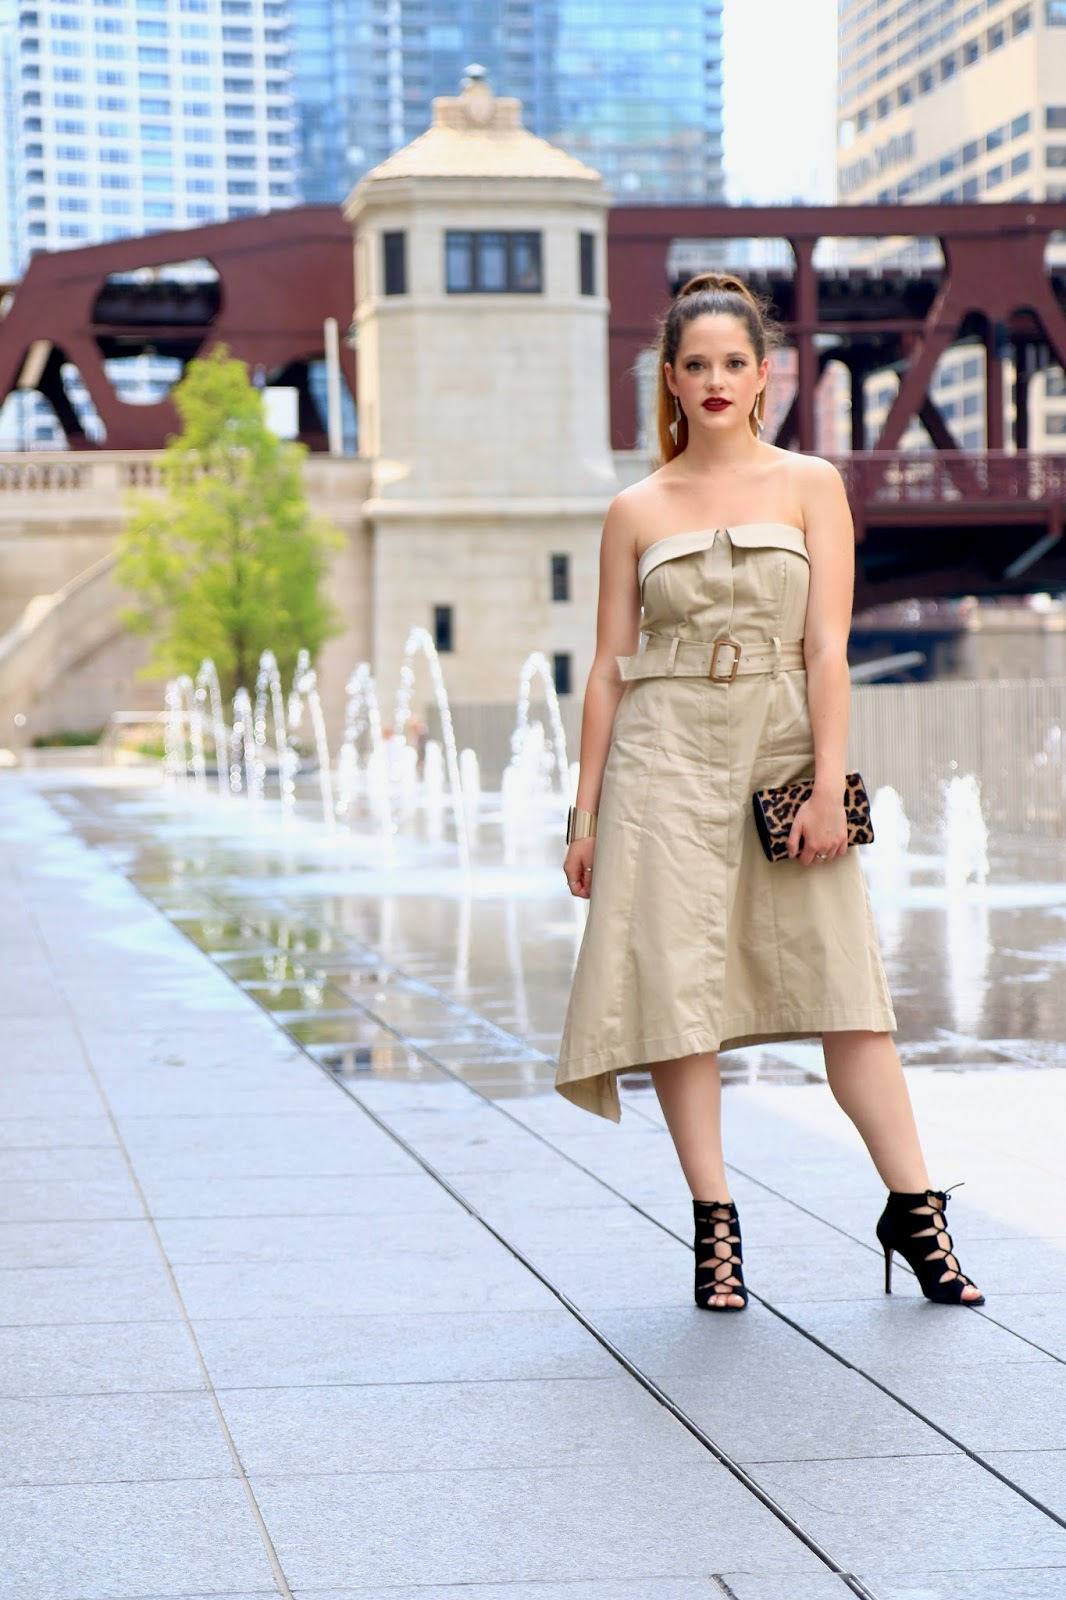 NYC Fashion blogger Kathleen Harper of Kat's Fashion Fix wearing Chicago summer style